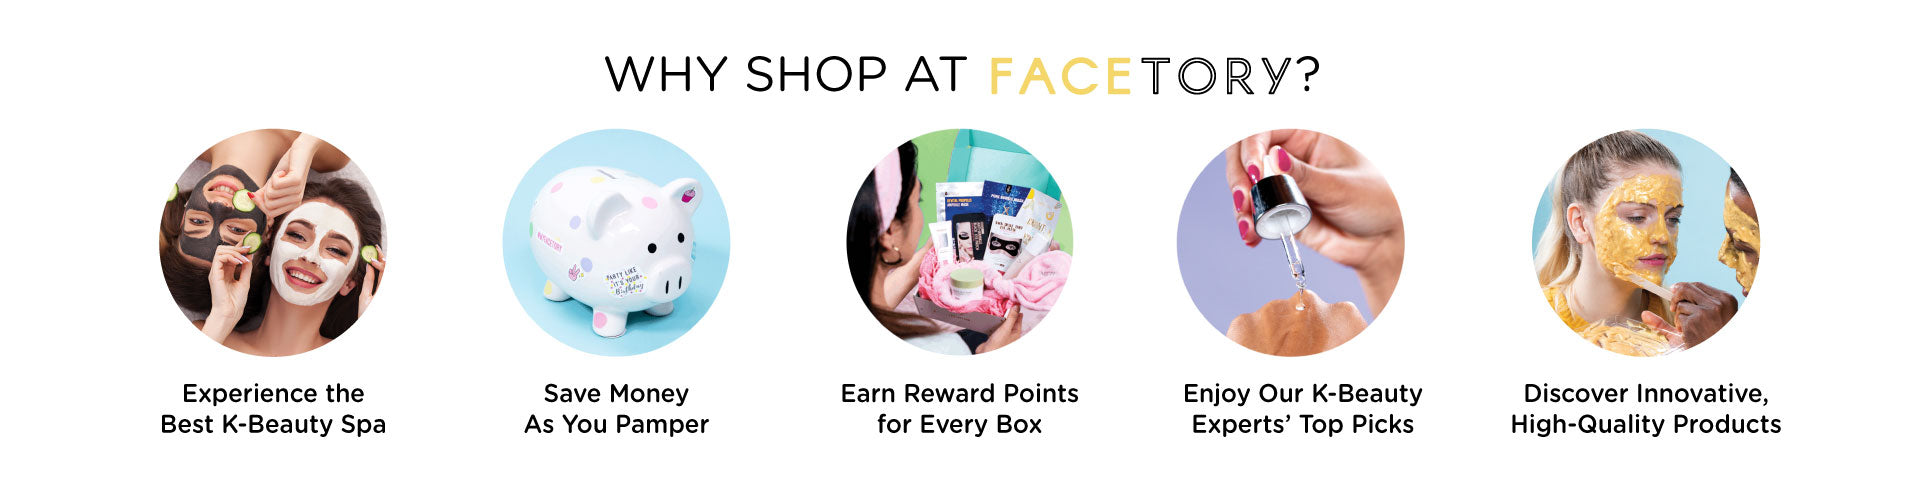 Why Shop at FaceTory Banner